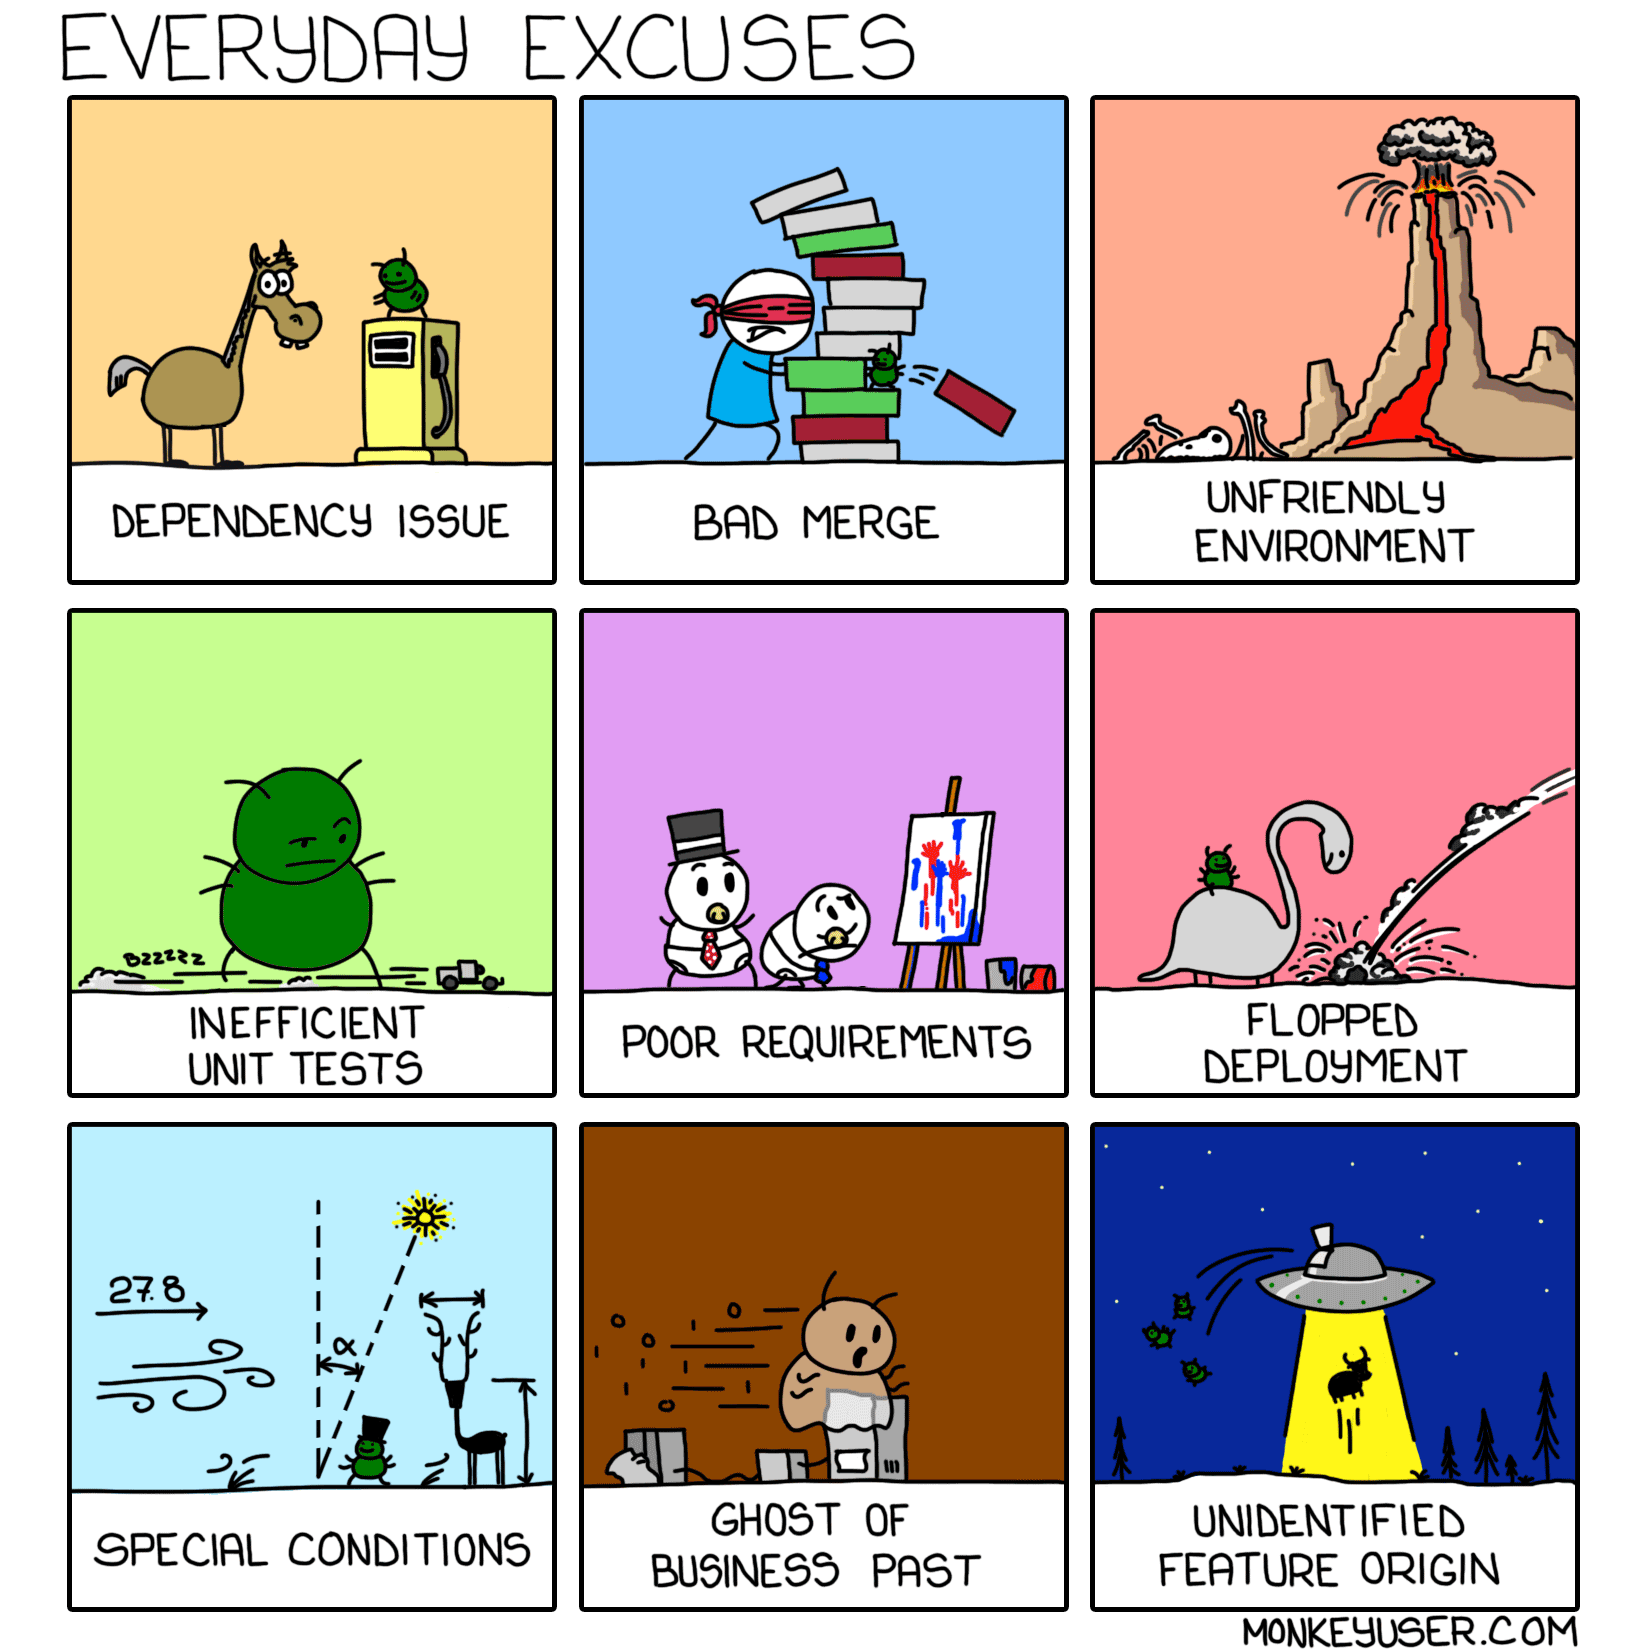 Everyday Excuses